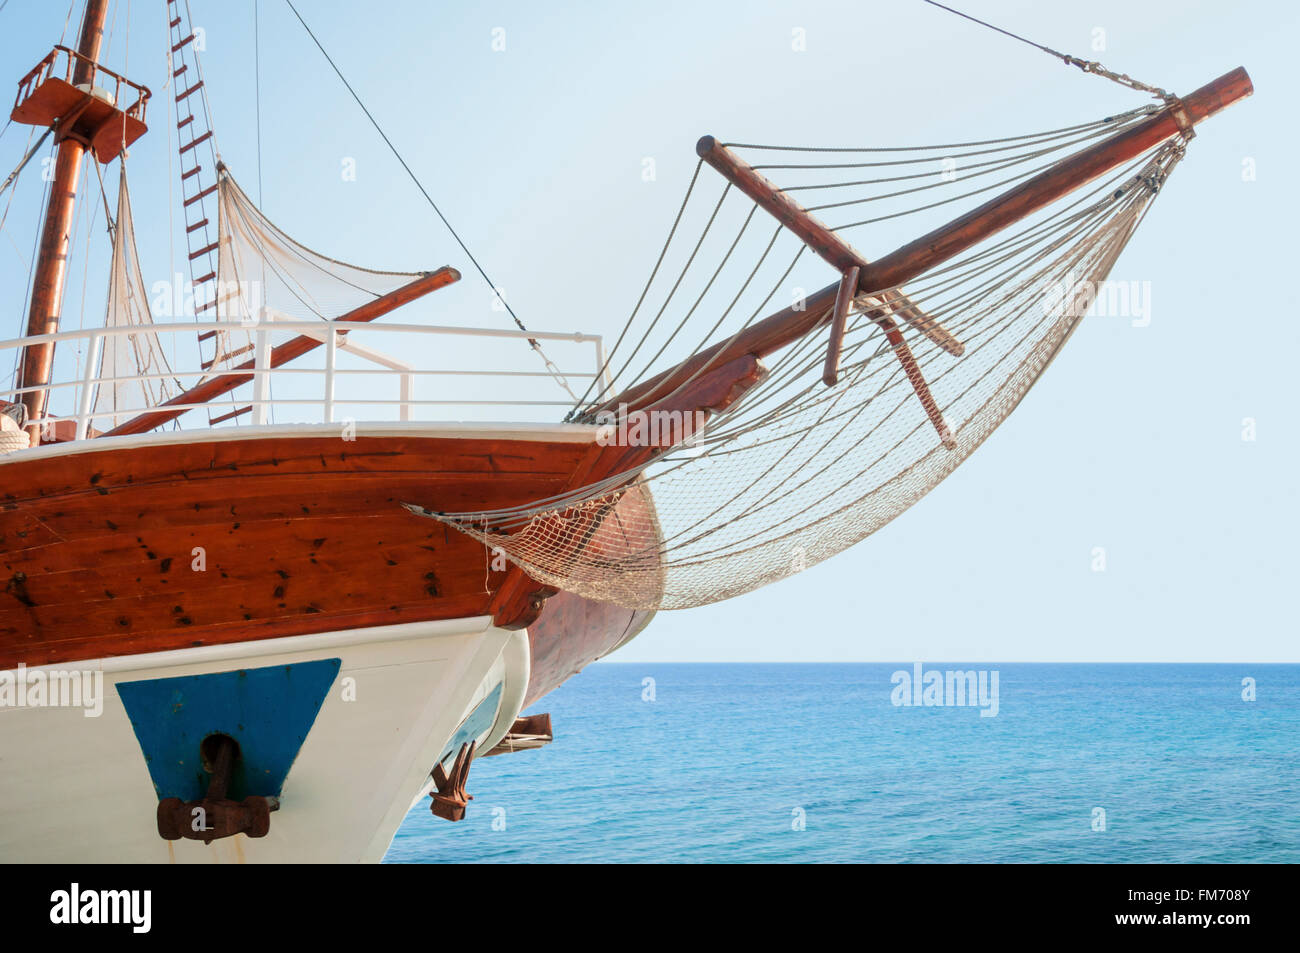 Wooden cruising yacht's bow - Stock Image